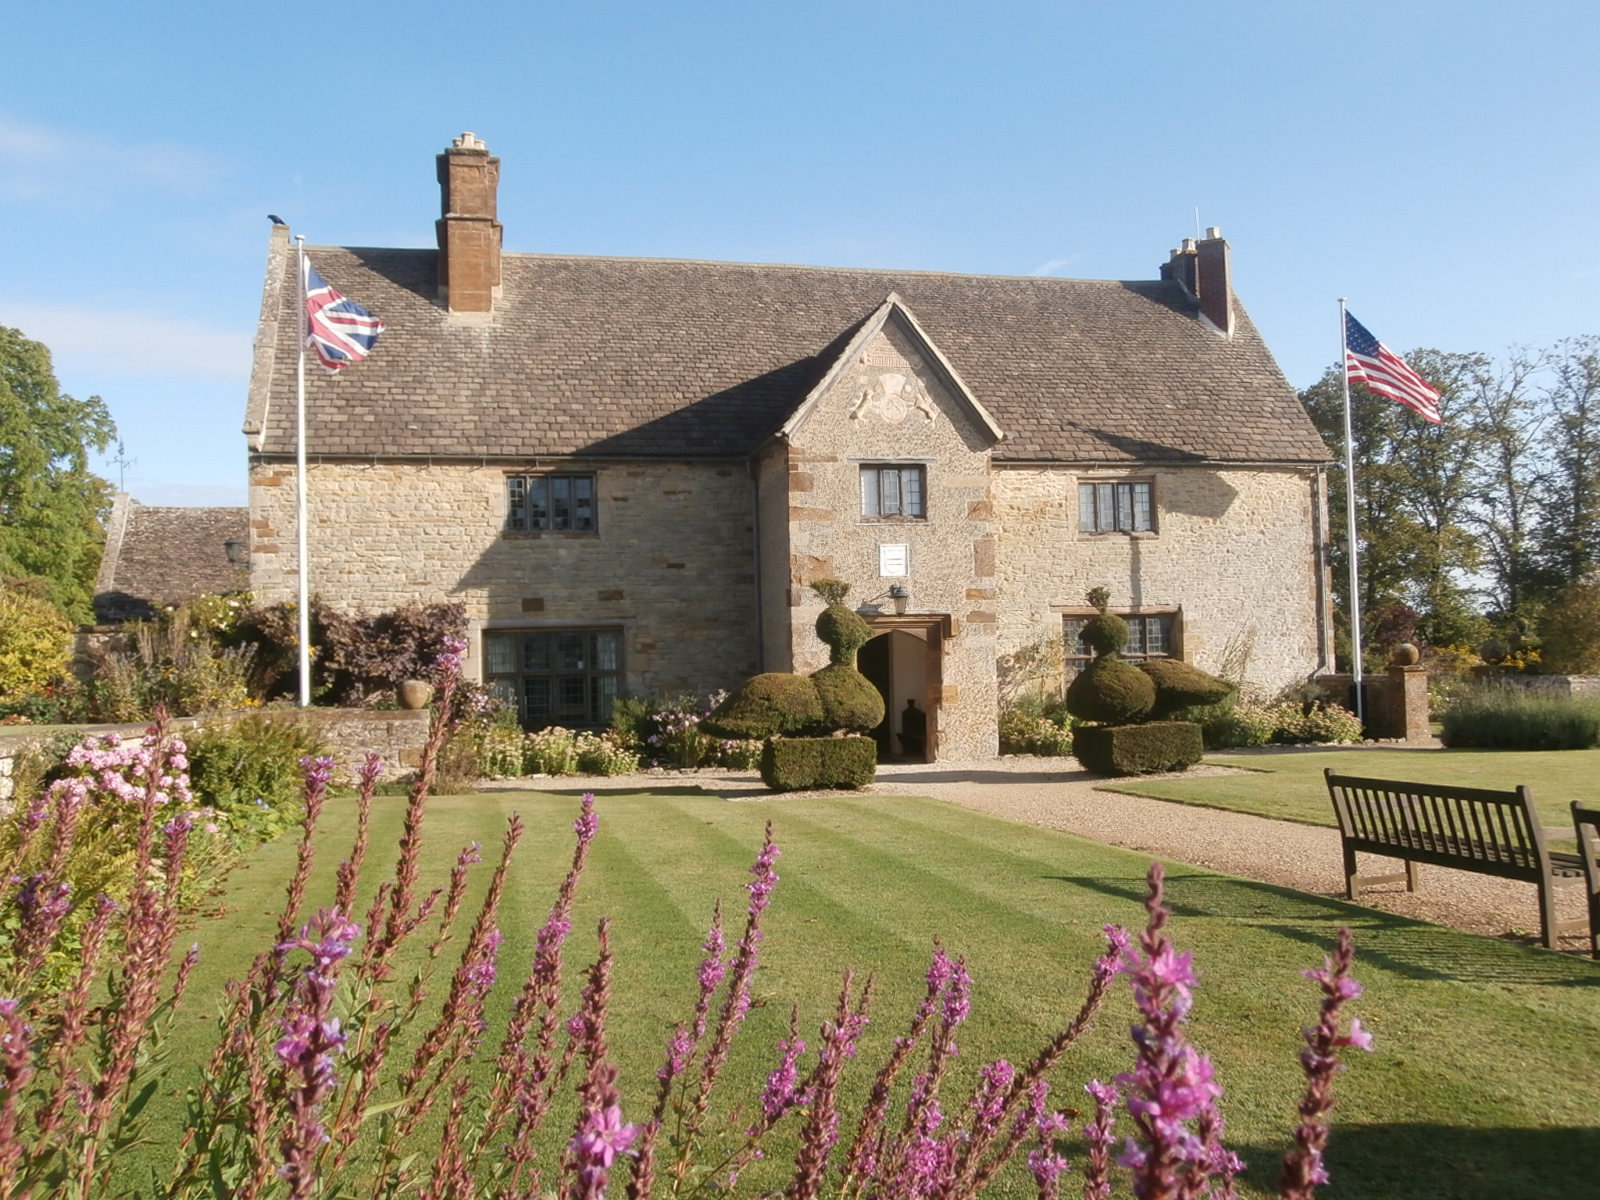 Sulgrave Manor - The Ancestral Home of George Washington